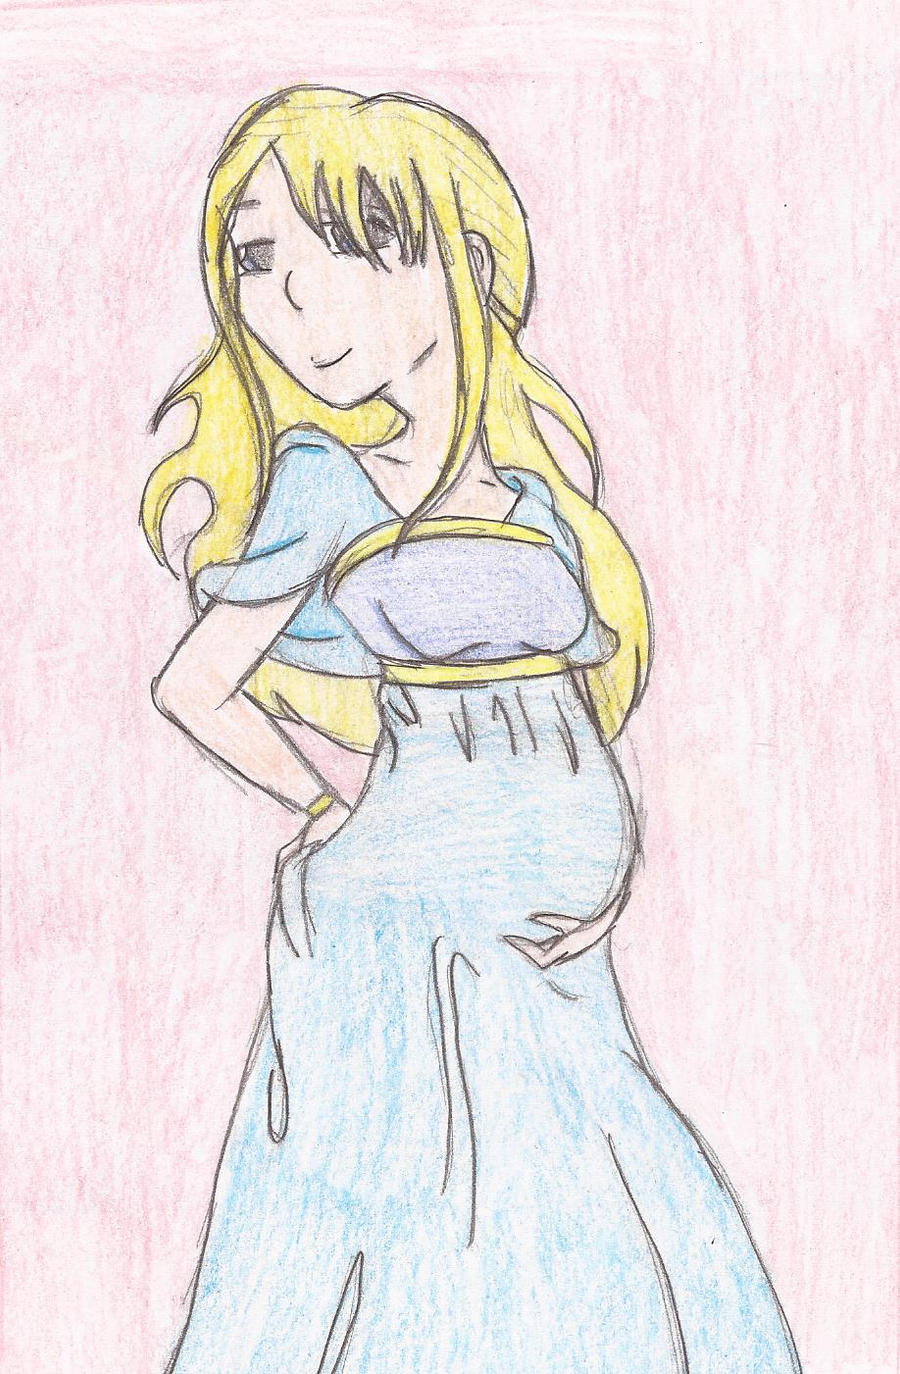 Modern astrid pregnant by littleladytoph on deviantart modern astrid pregnant by littleladytoph modern astrid pregnant by littleladytoph ccuart Image collections